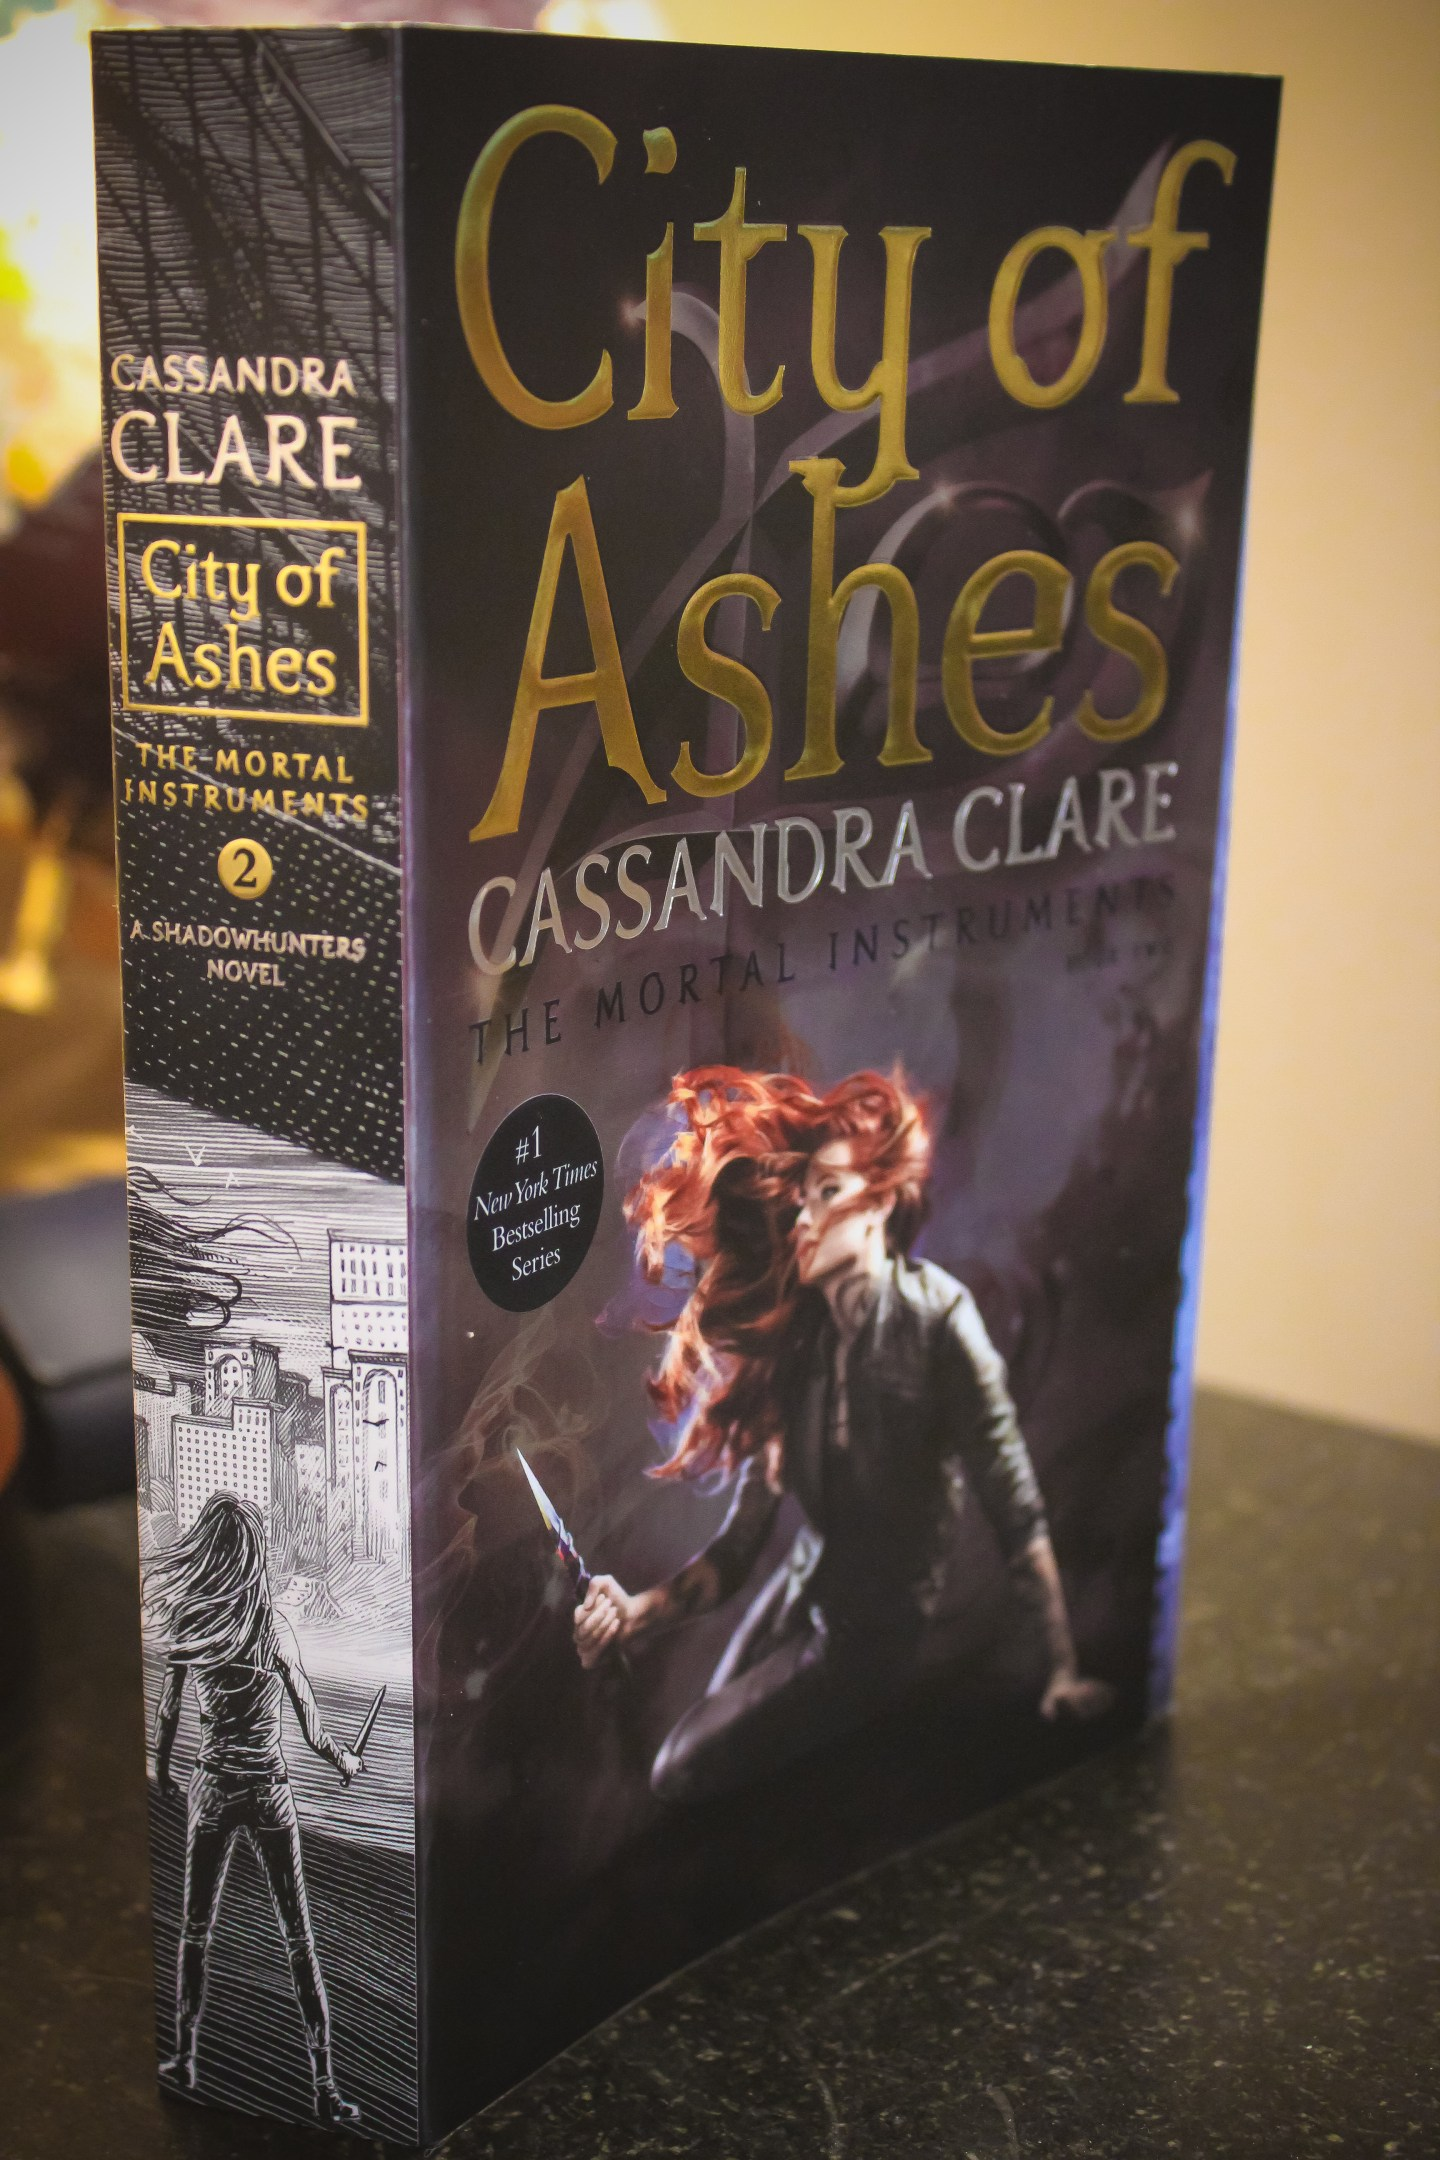 Comparing The Mortal Instruments: City of Ashes to Shadowhunters 2